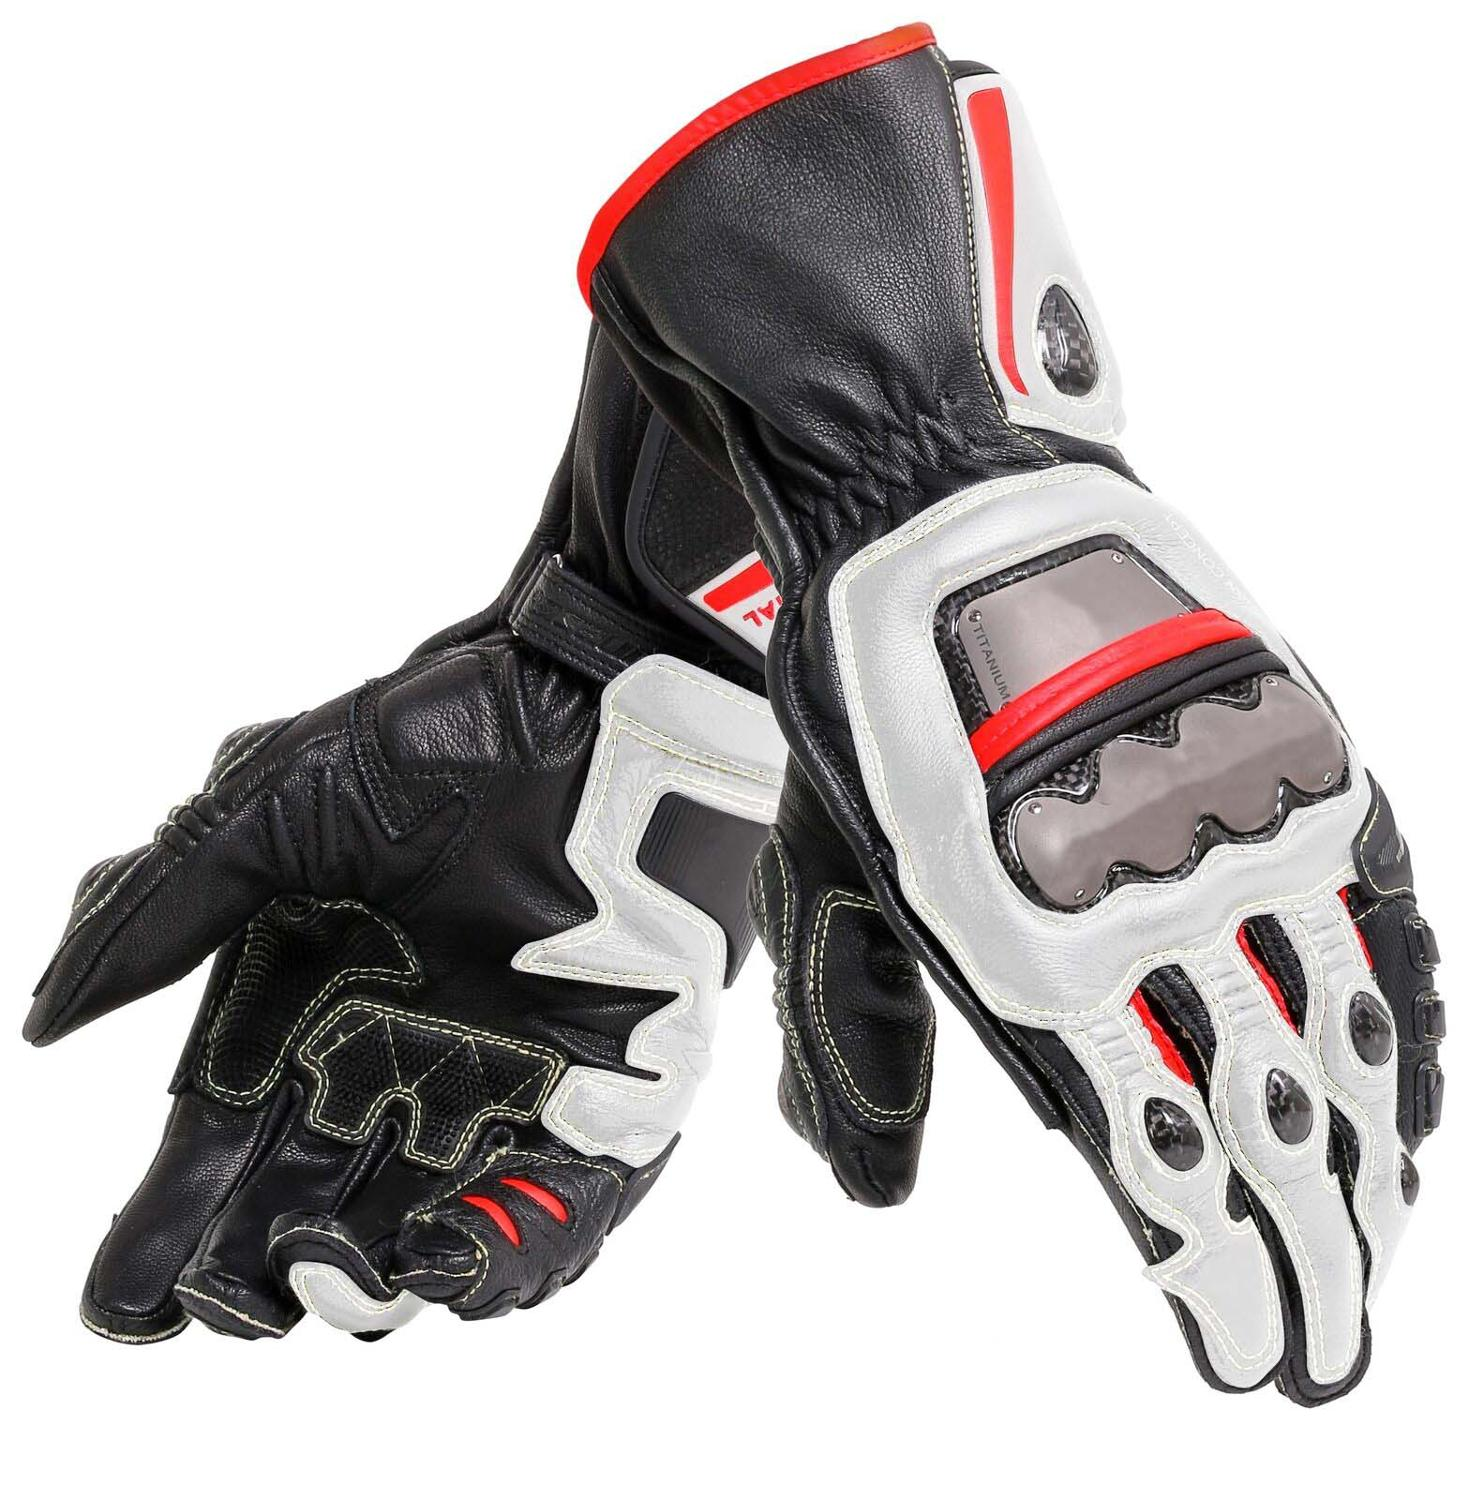 New 4 Colors 100% Genuine Leather Dain Full Metal 6 Motorcycle Gloves Racing Long Gloves Driving Motorbike Cowhide Gloves